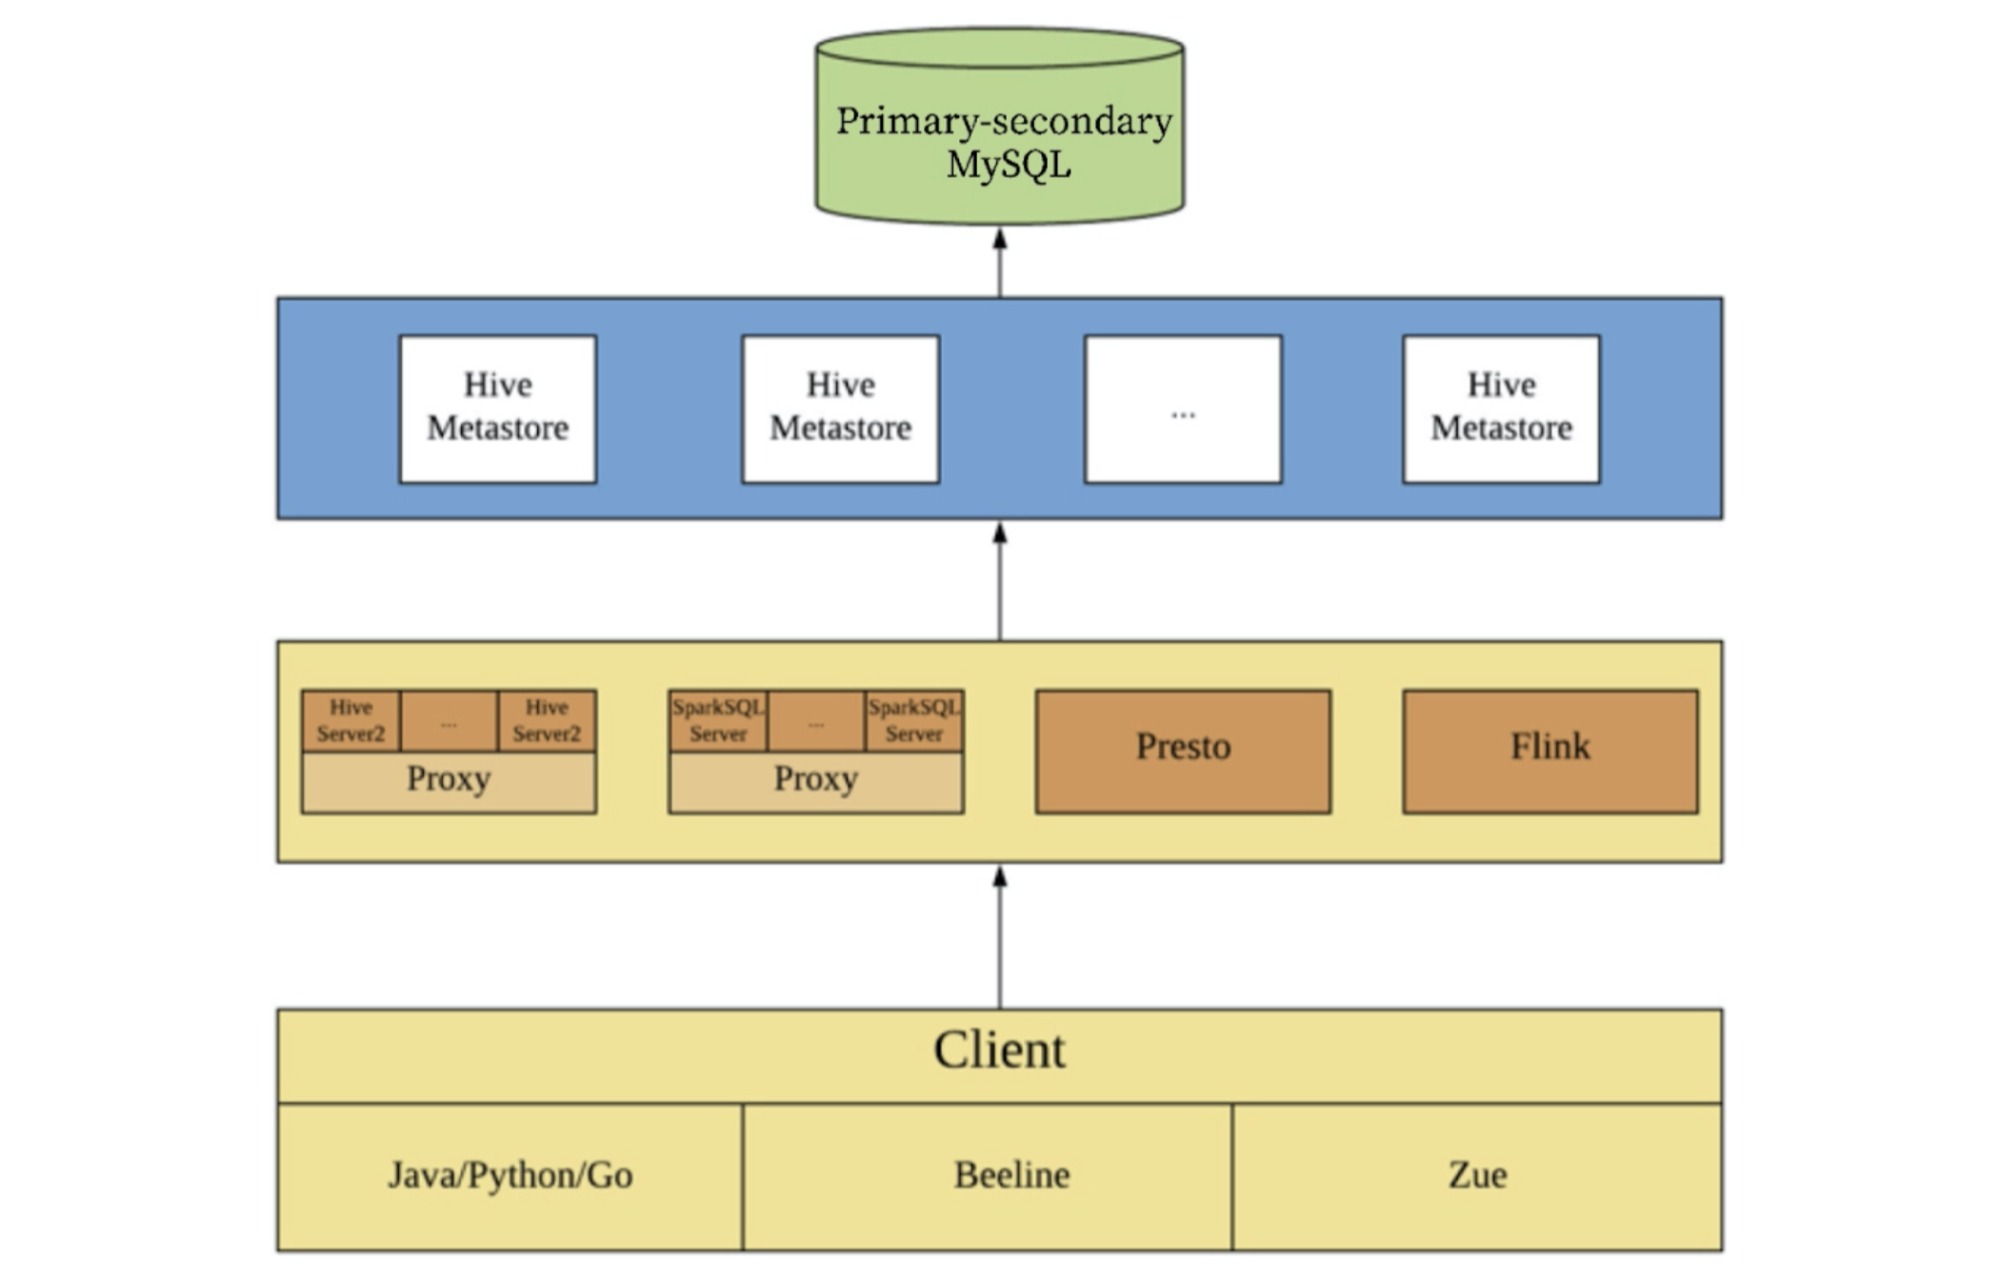 The Hive architecture before migration to TiDB